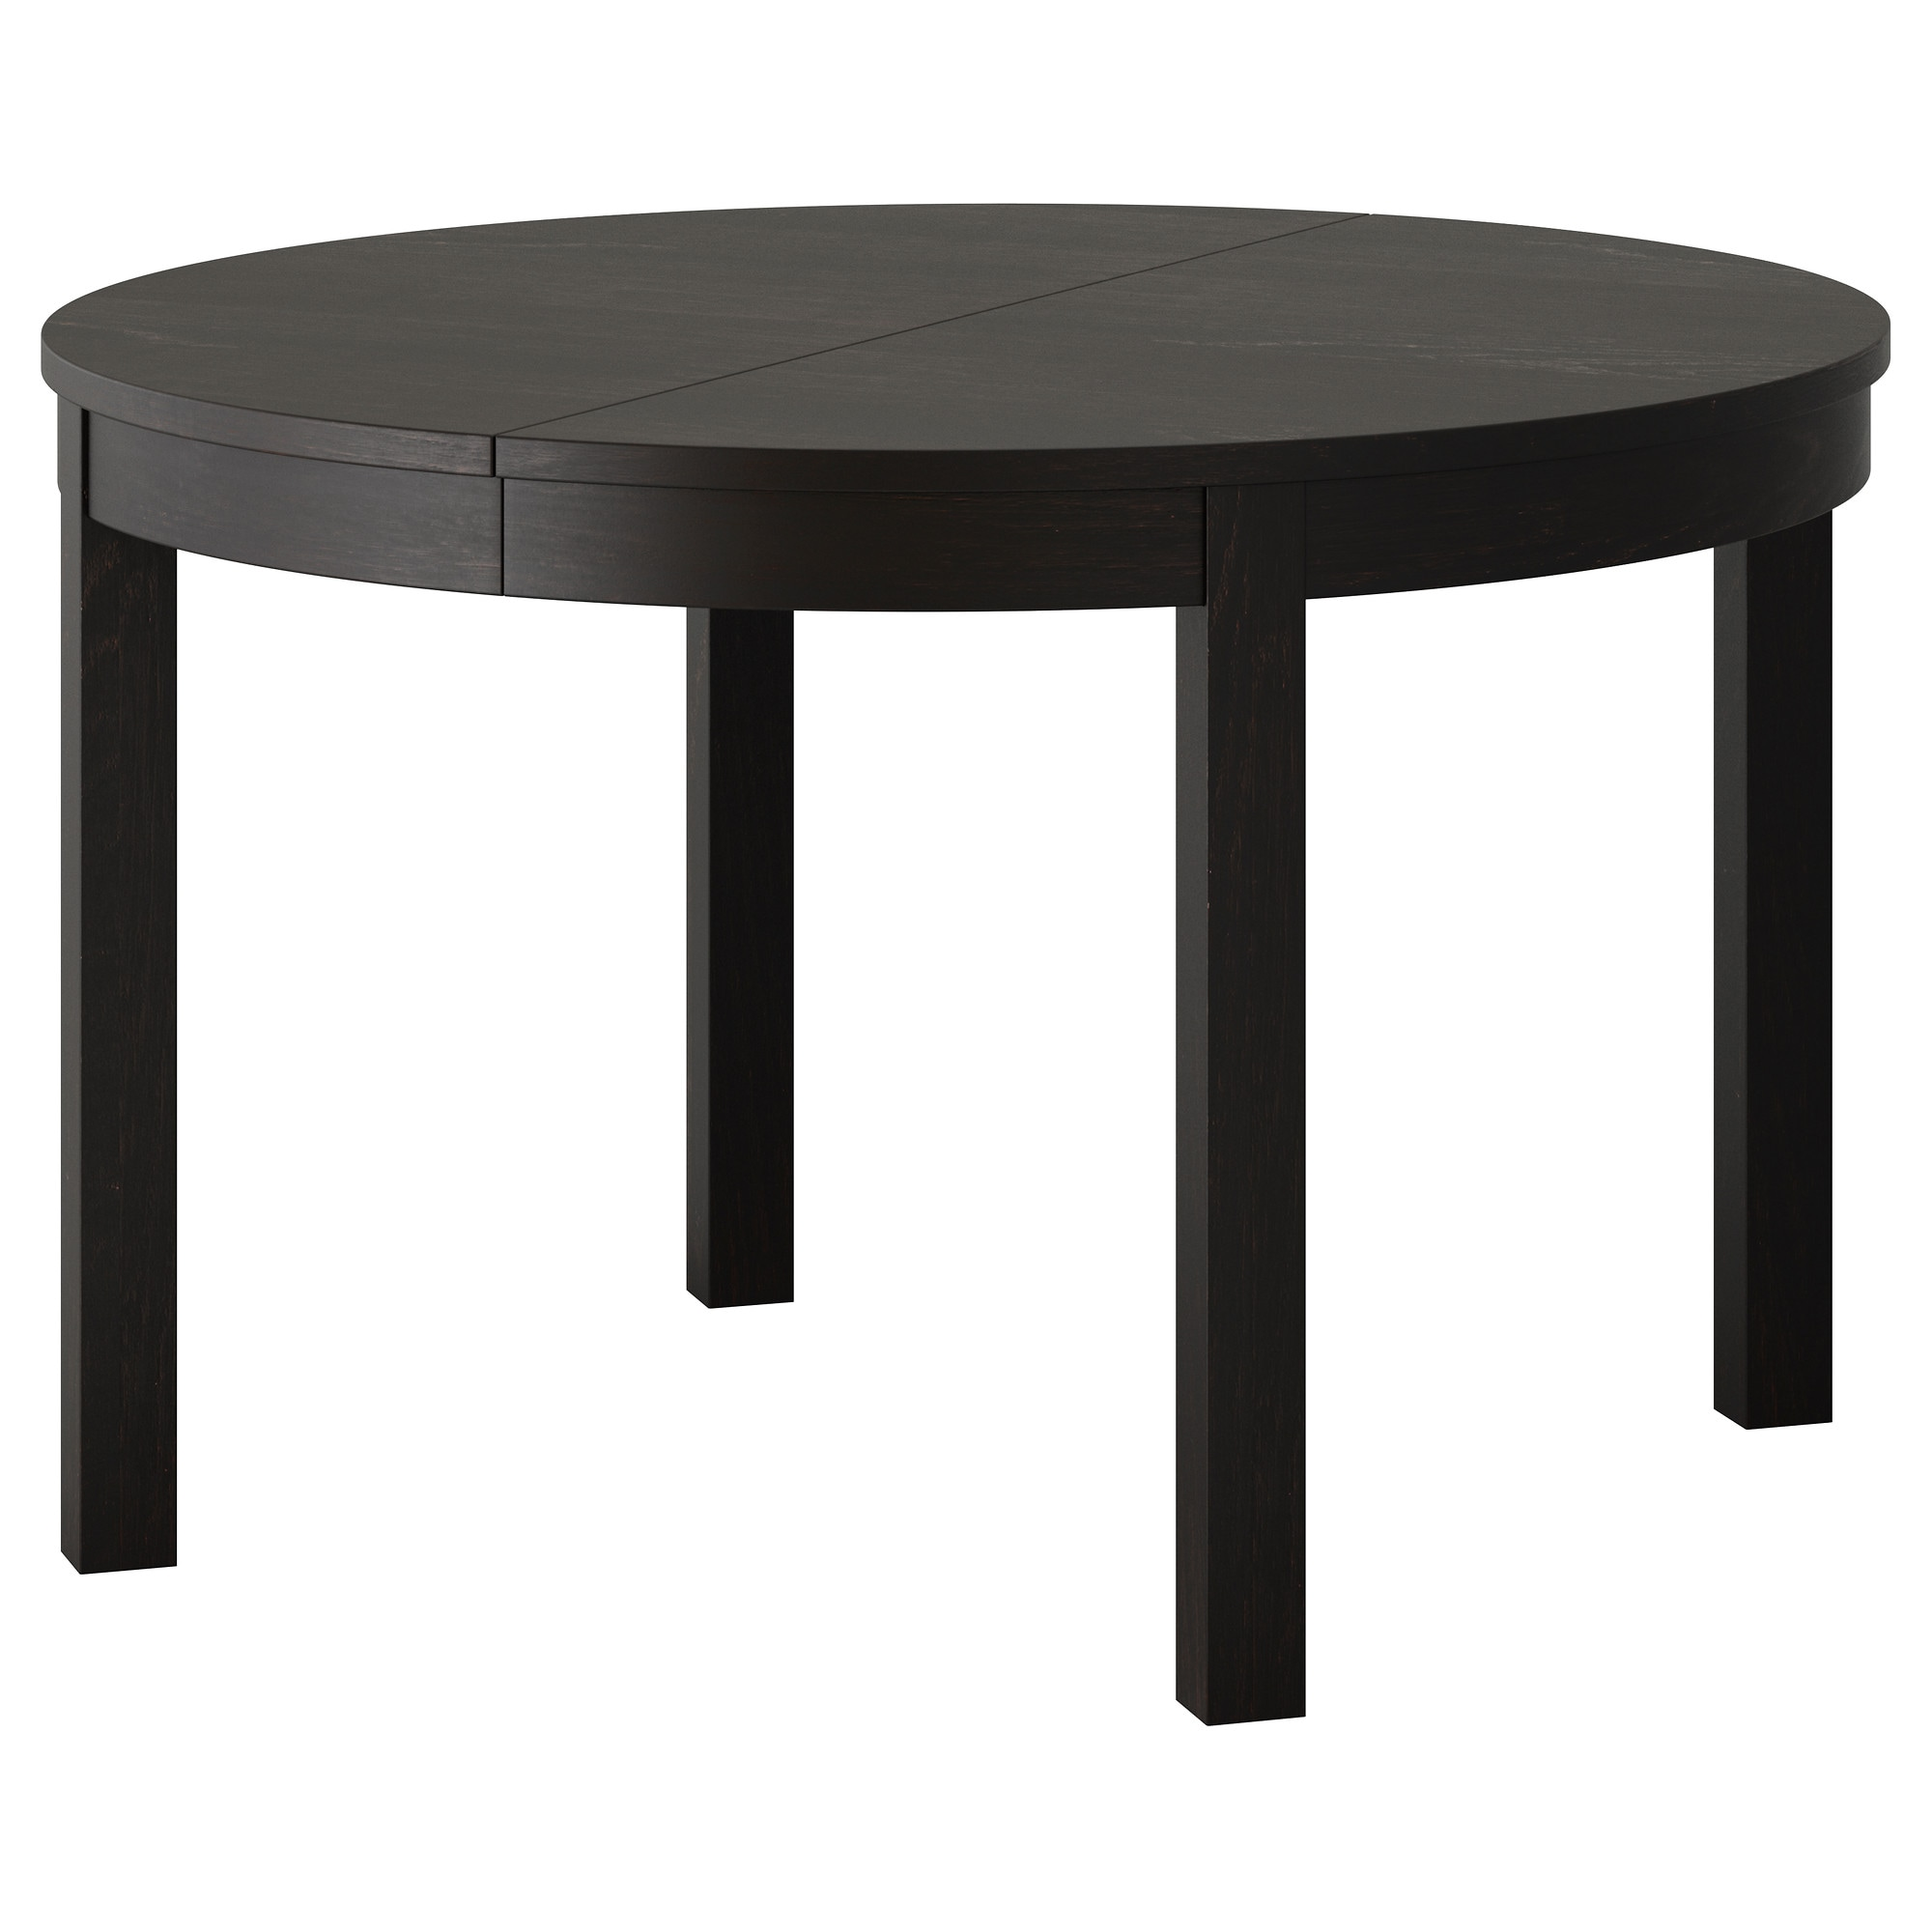 Standard Dining Room Table Dimensions Standard Kitchen Table Sizes 0173598 Pe327723 S5jpg Standard